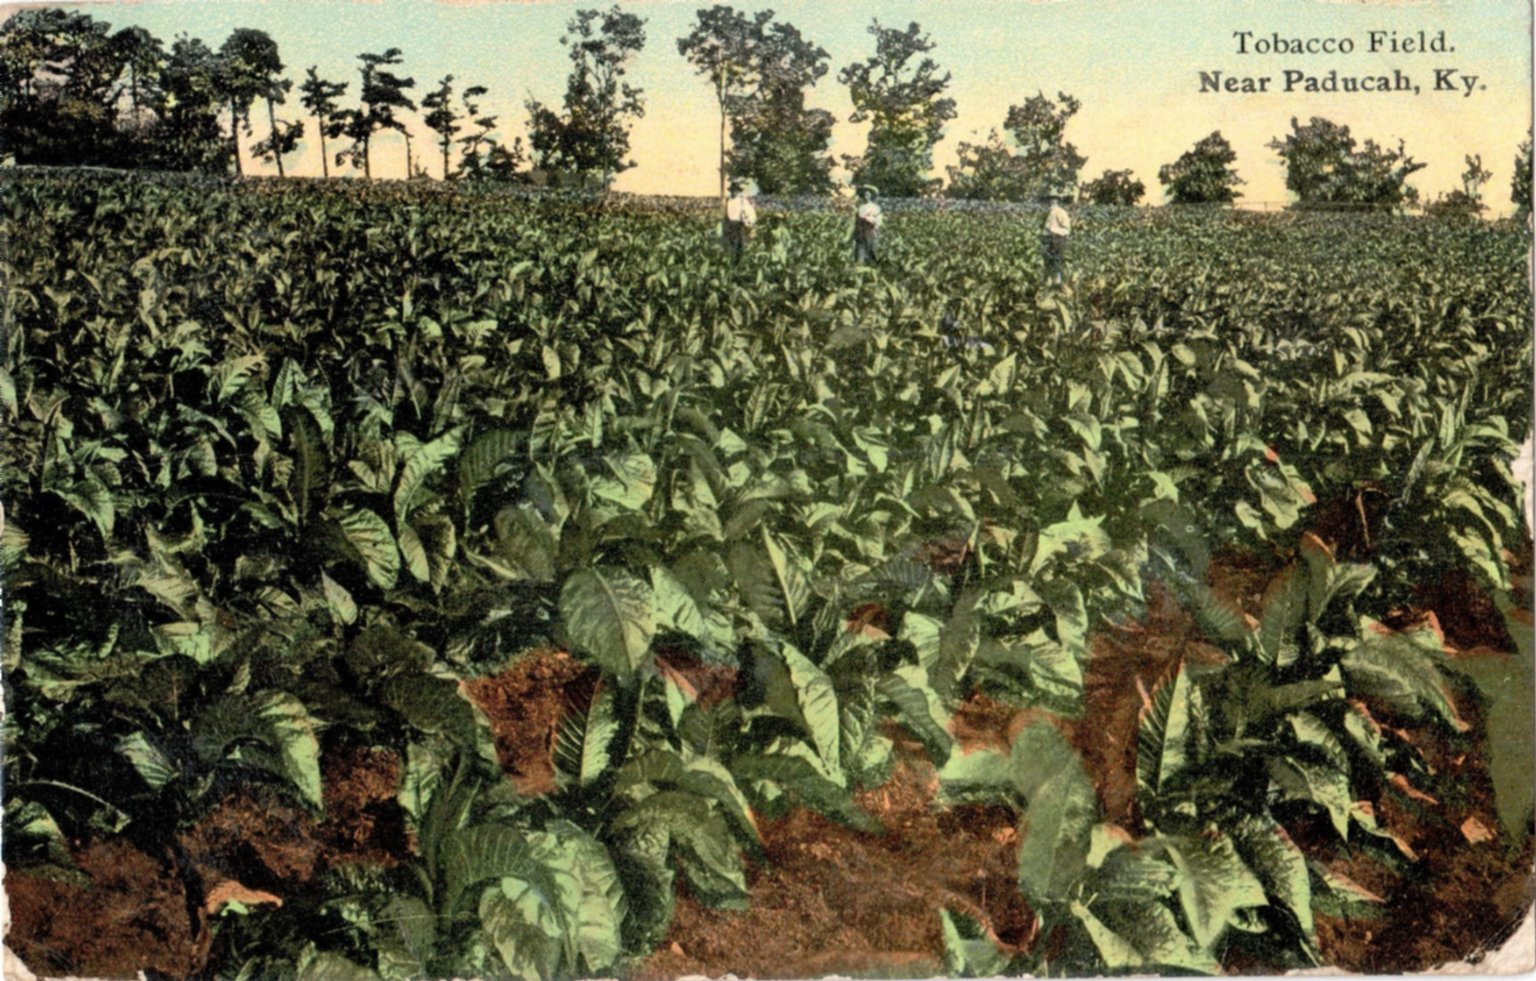 Tobacco Field Near Paducah, KY